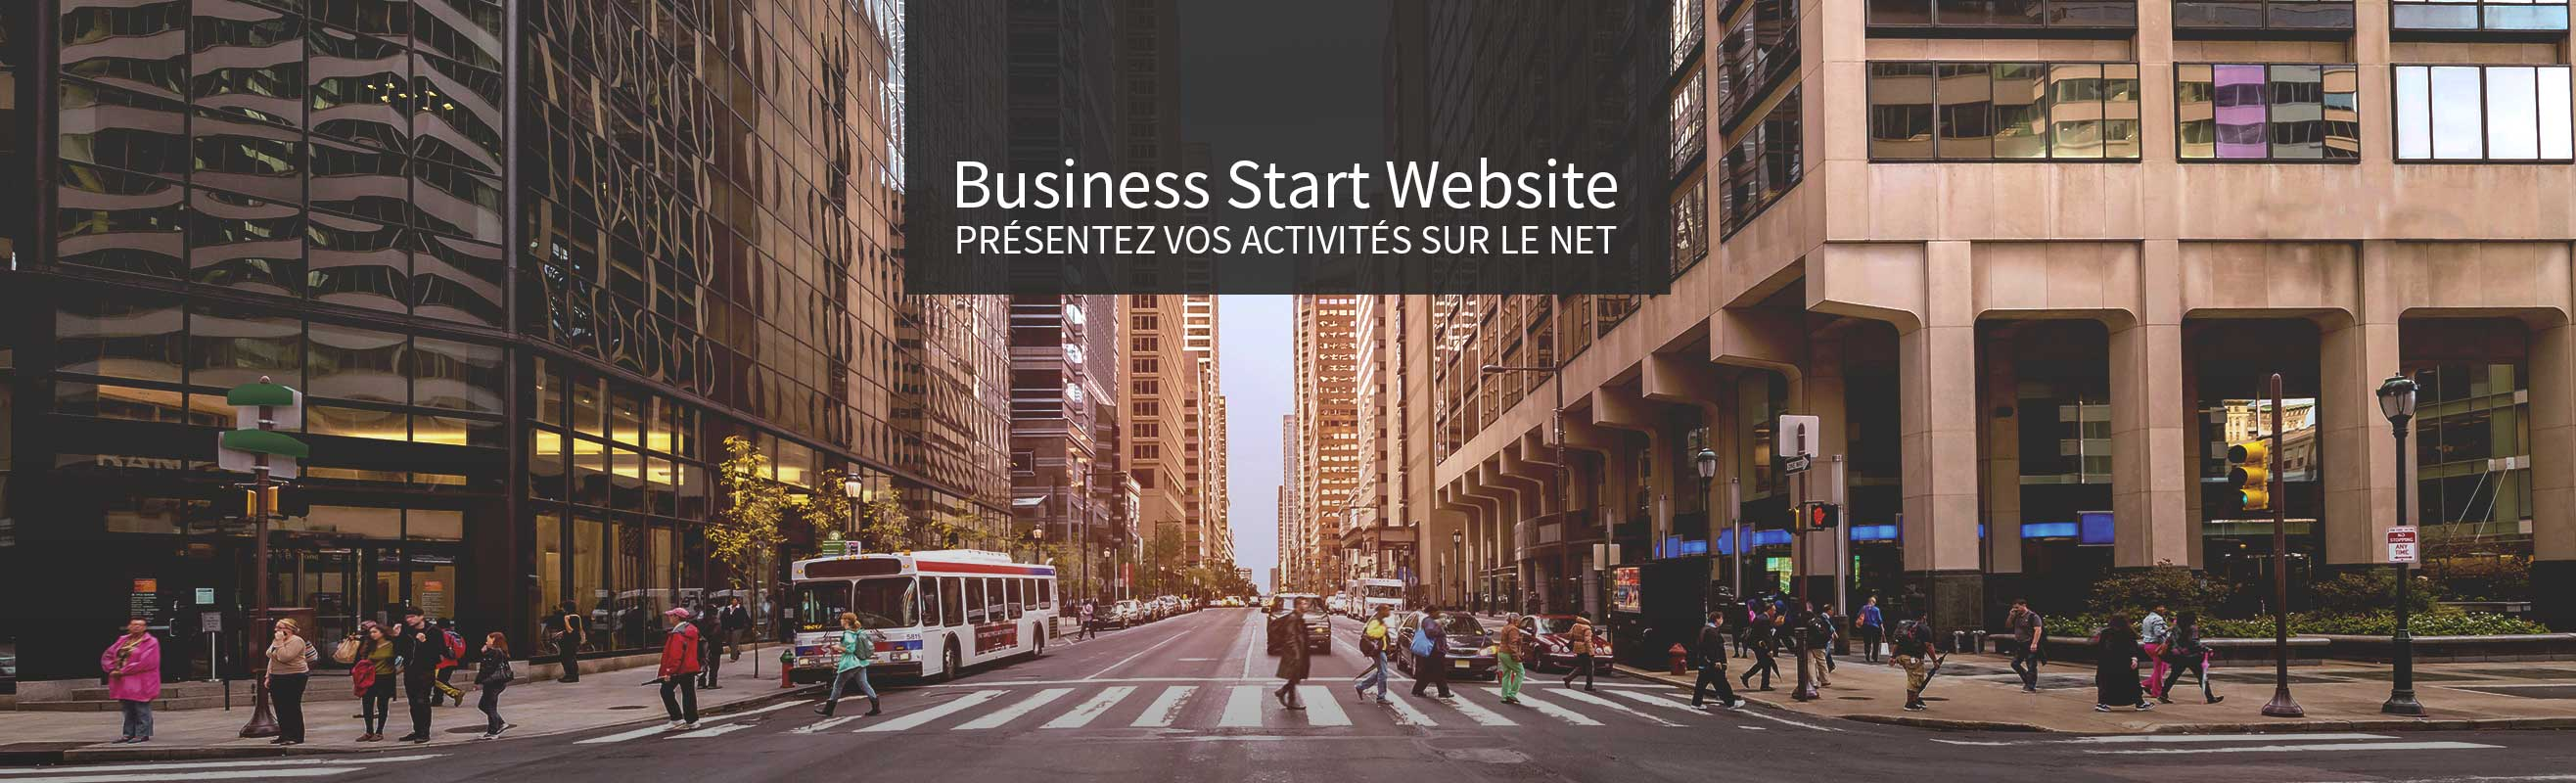 Ekyao Business - Web design. Ekyao Business START Website